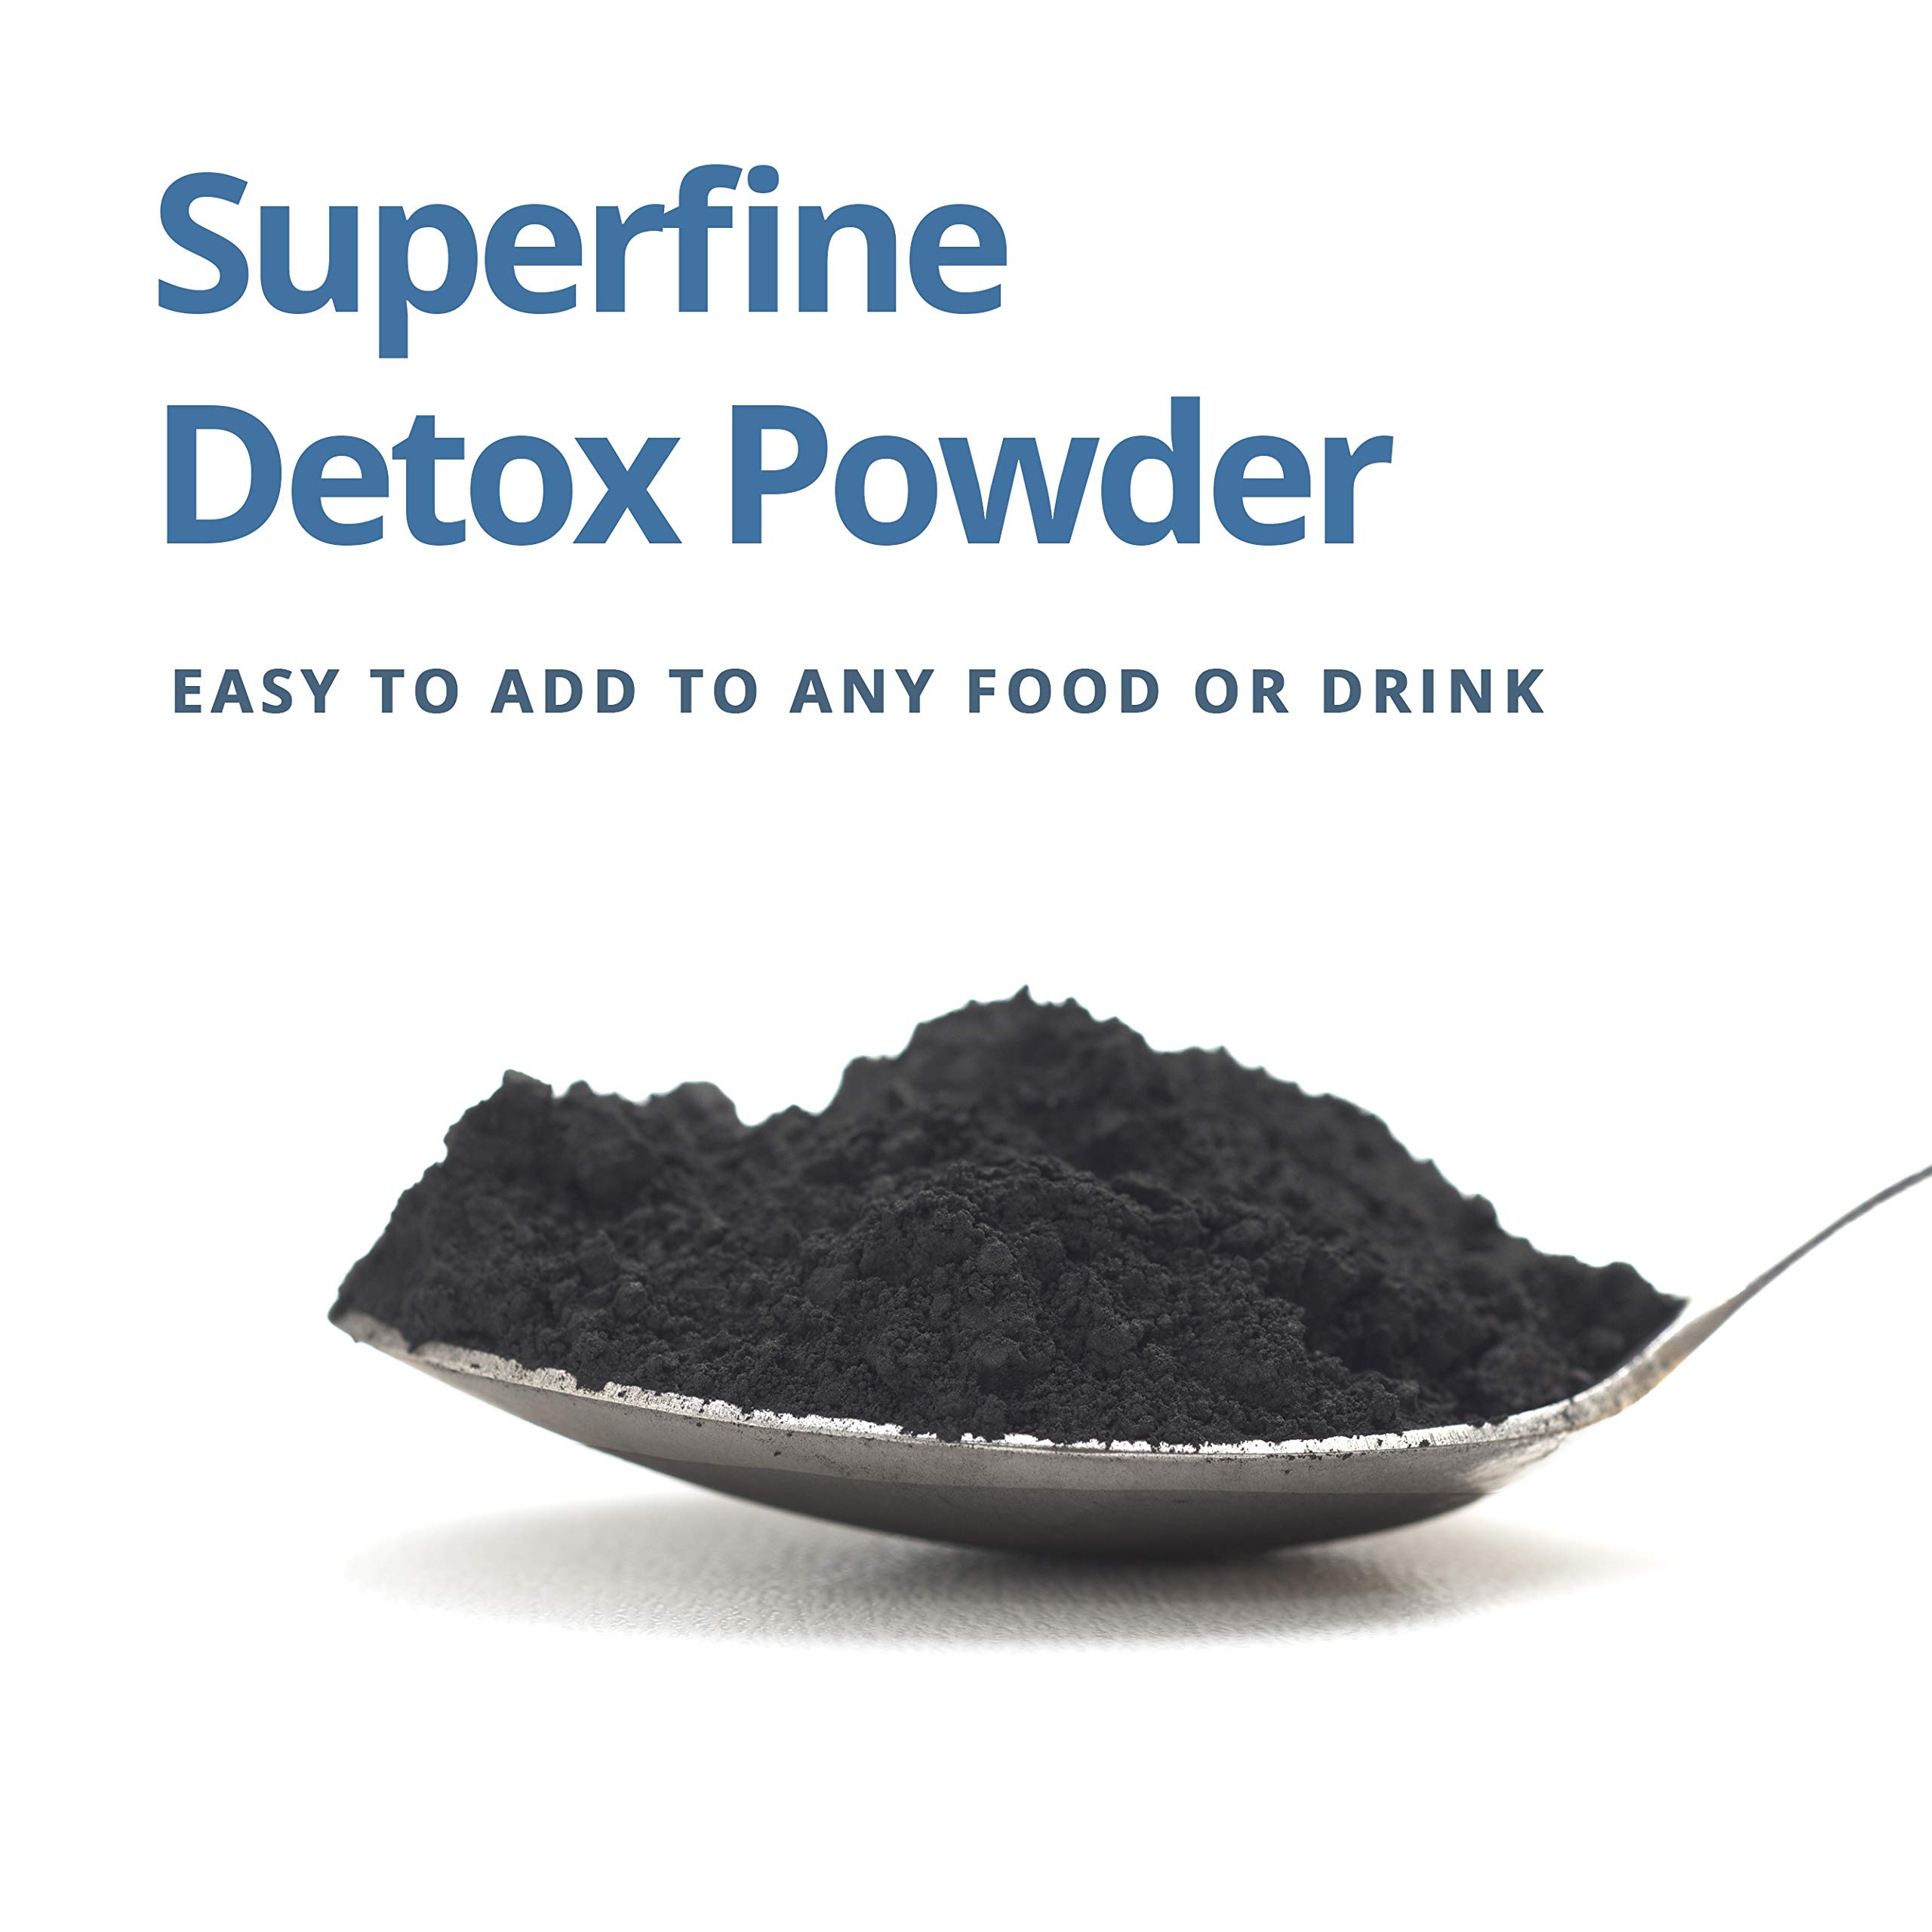 DETOX 1600 USP - Super Fine Coconut Activated Charcoal Powder - 12 oz by Charcoal House (Image #4)